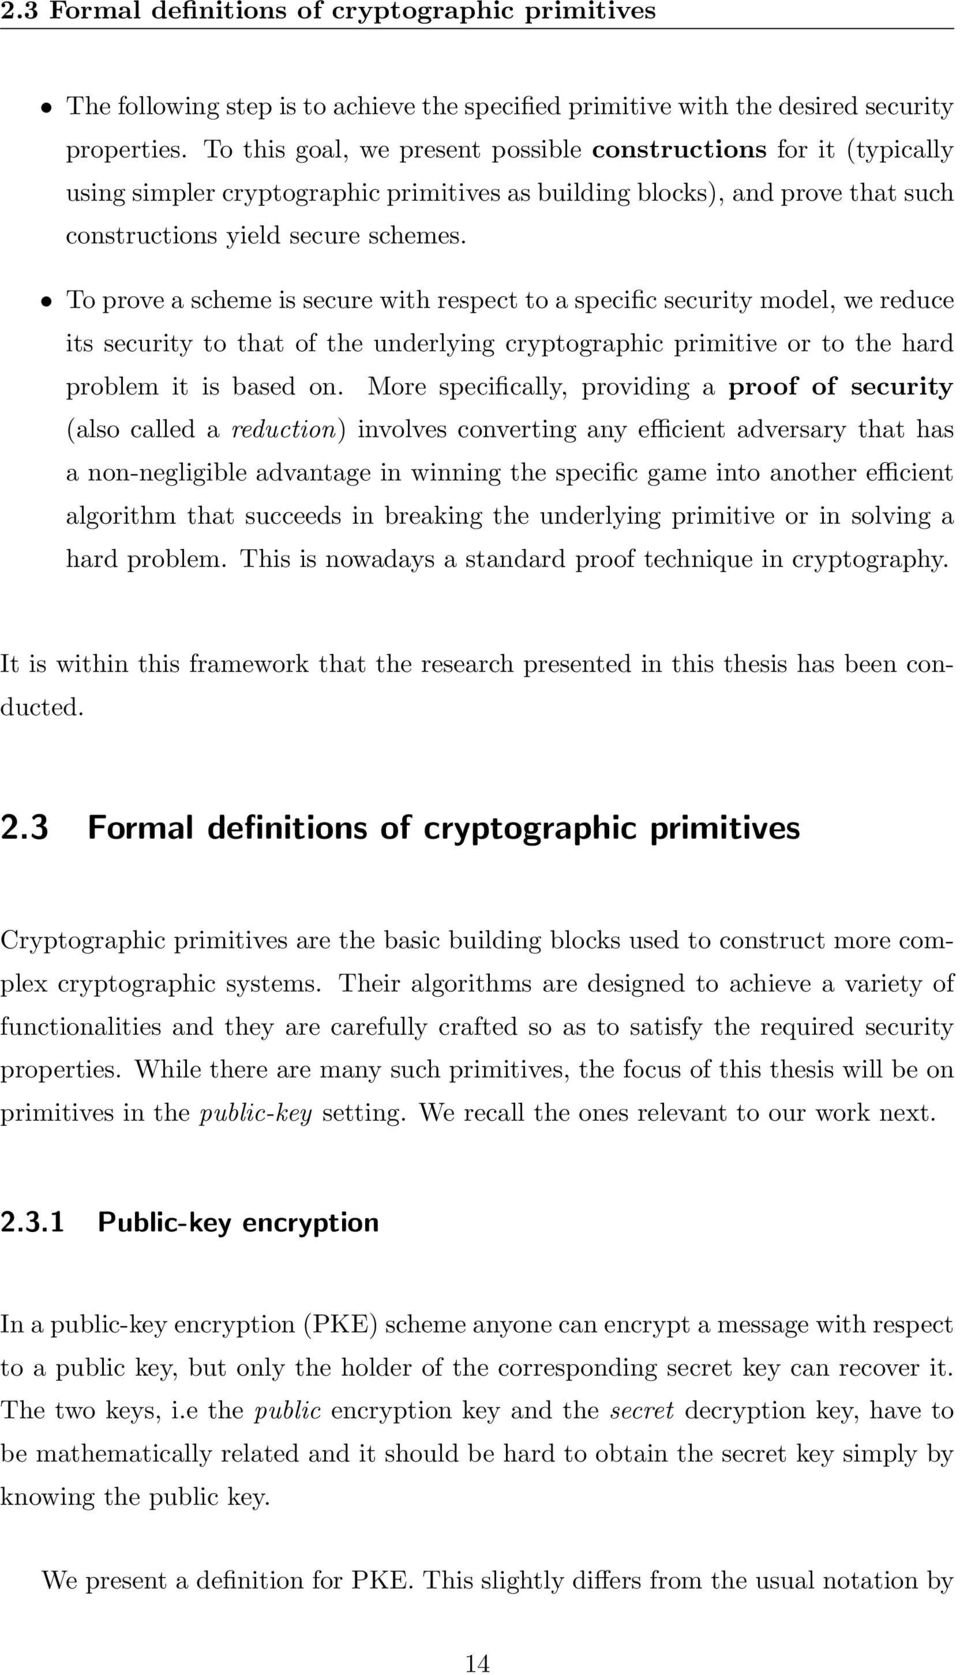 To prove a scheme is secure with respect to a specific security model, we reduce its security to that of the underlying cryptographic primitive or to the hard problem it is based on.